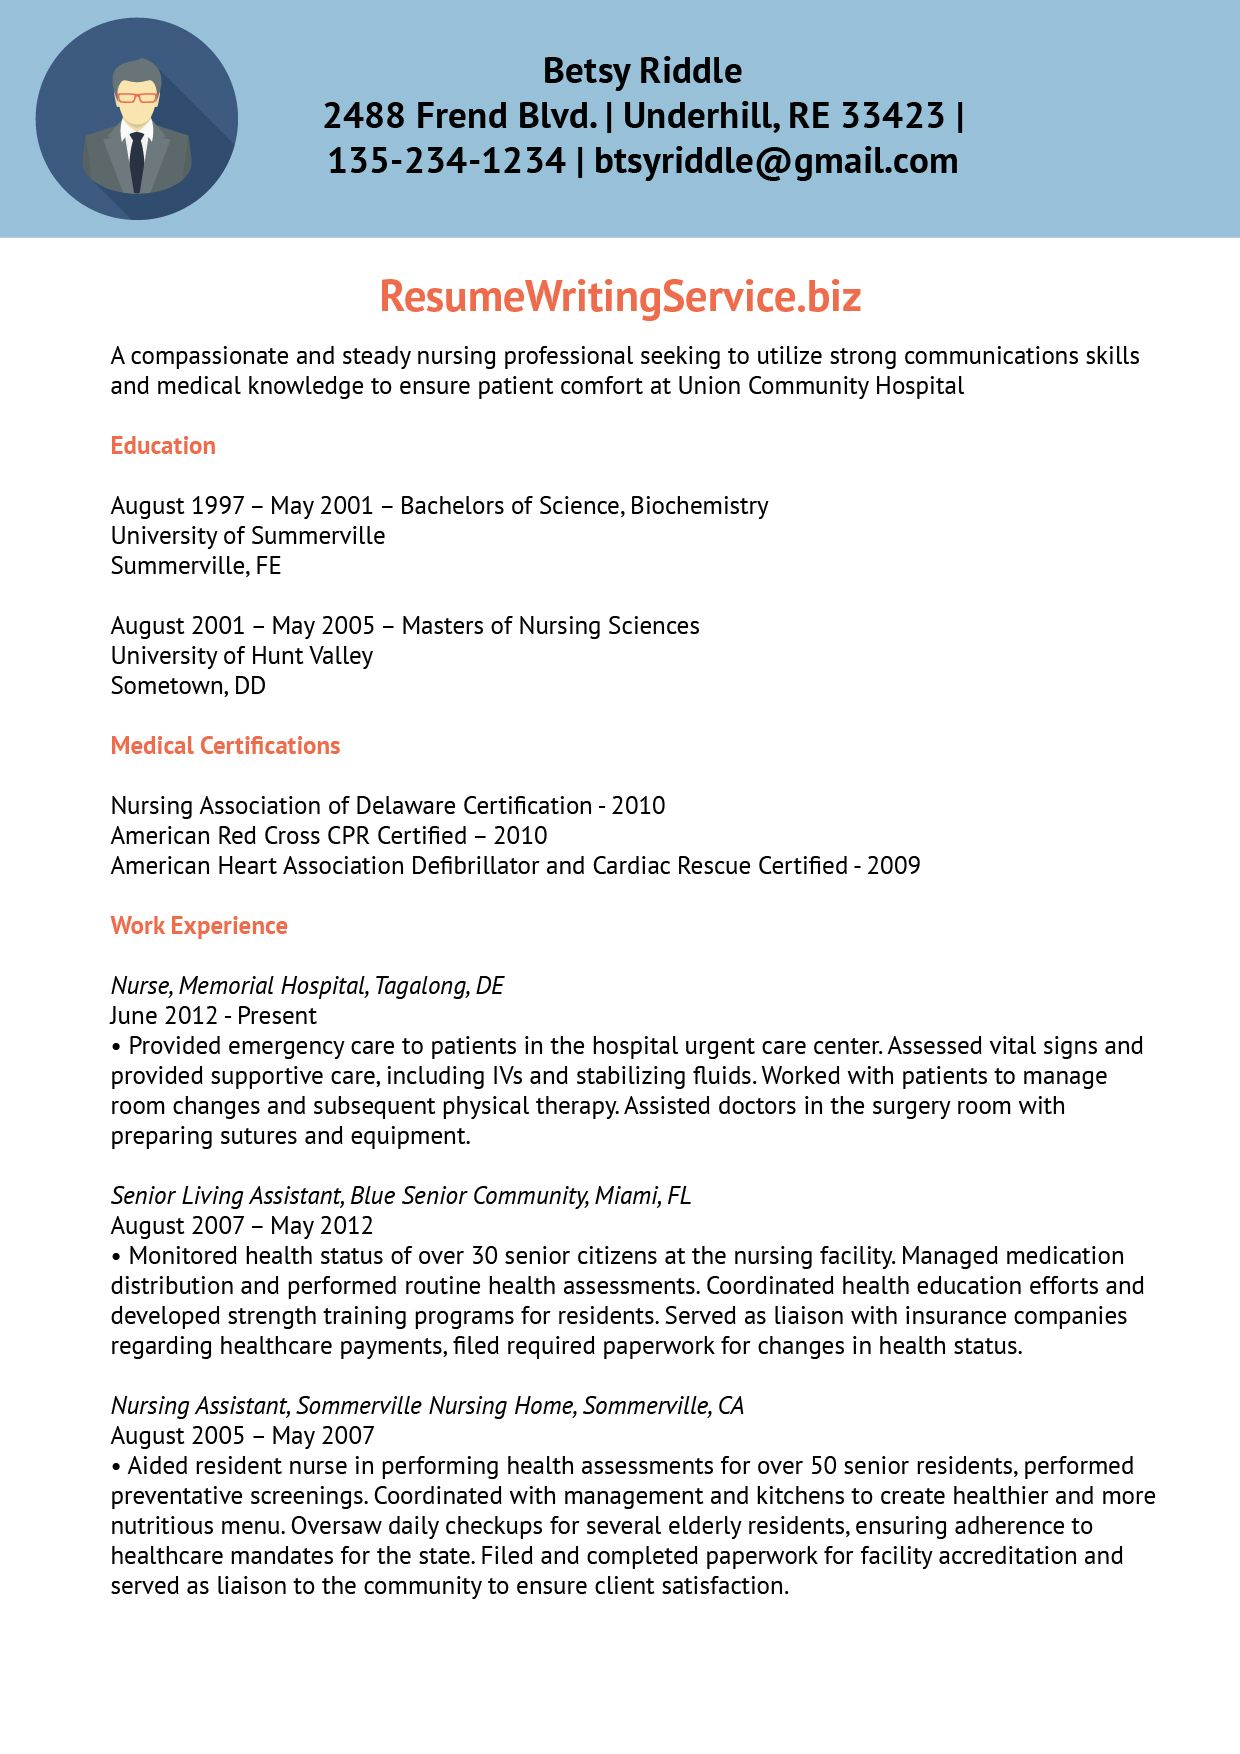 professional nursing resume writing services writers best font and size for travel nurse Resume Nursing Resume Writing Services